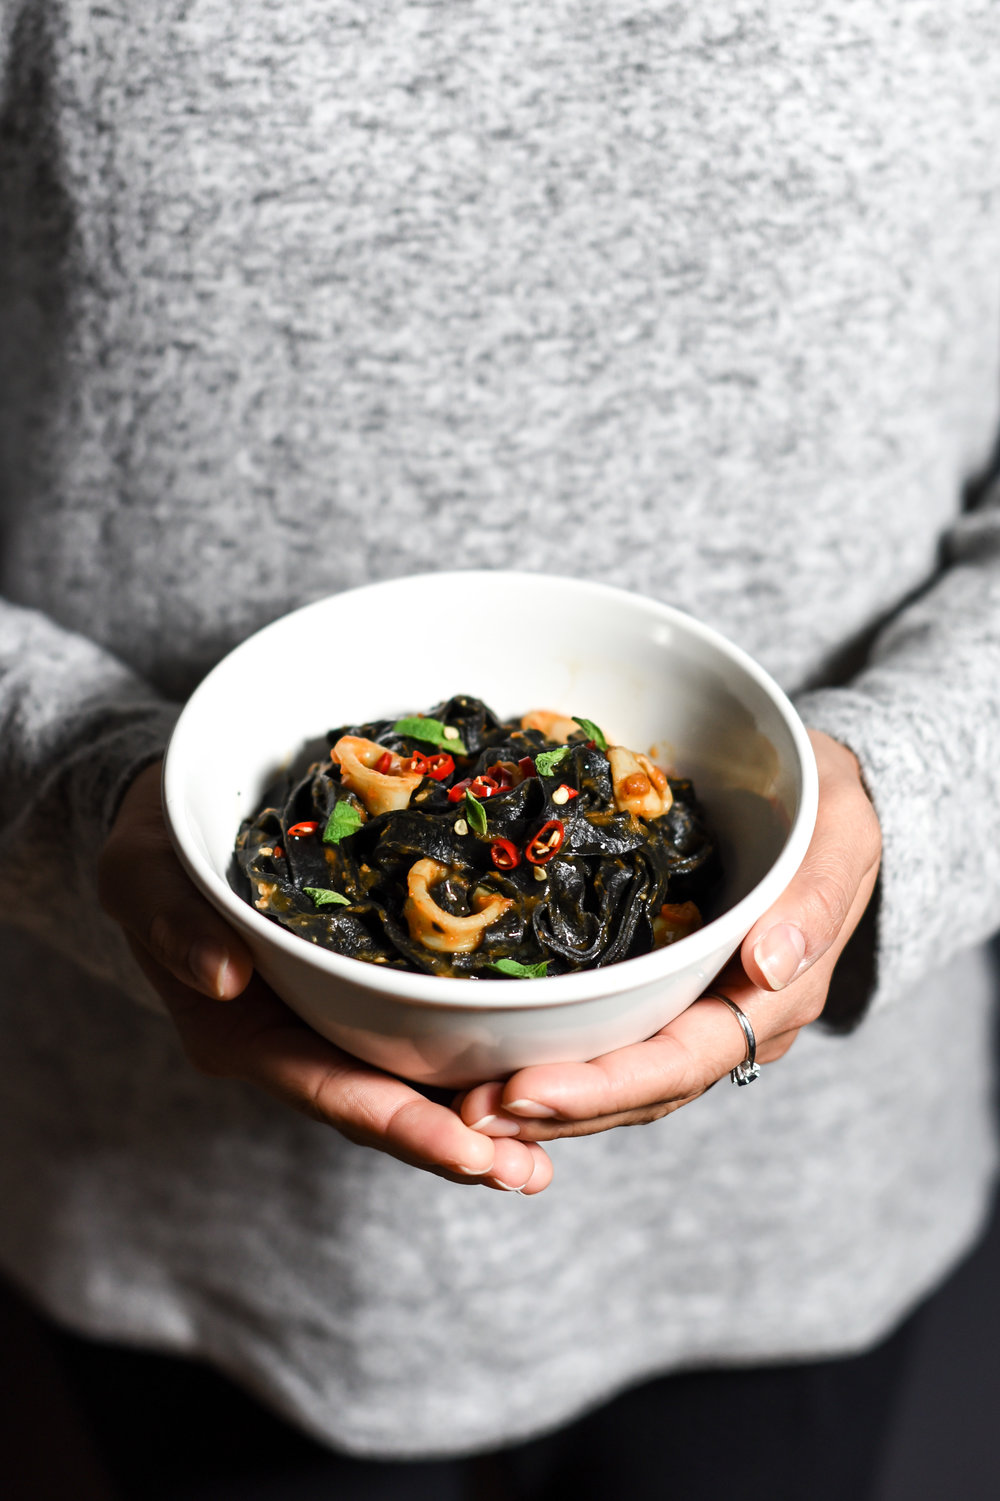 squid-ink-pasta-2.12.17-edited-72dpi-28.jpg